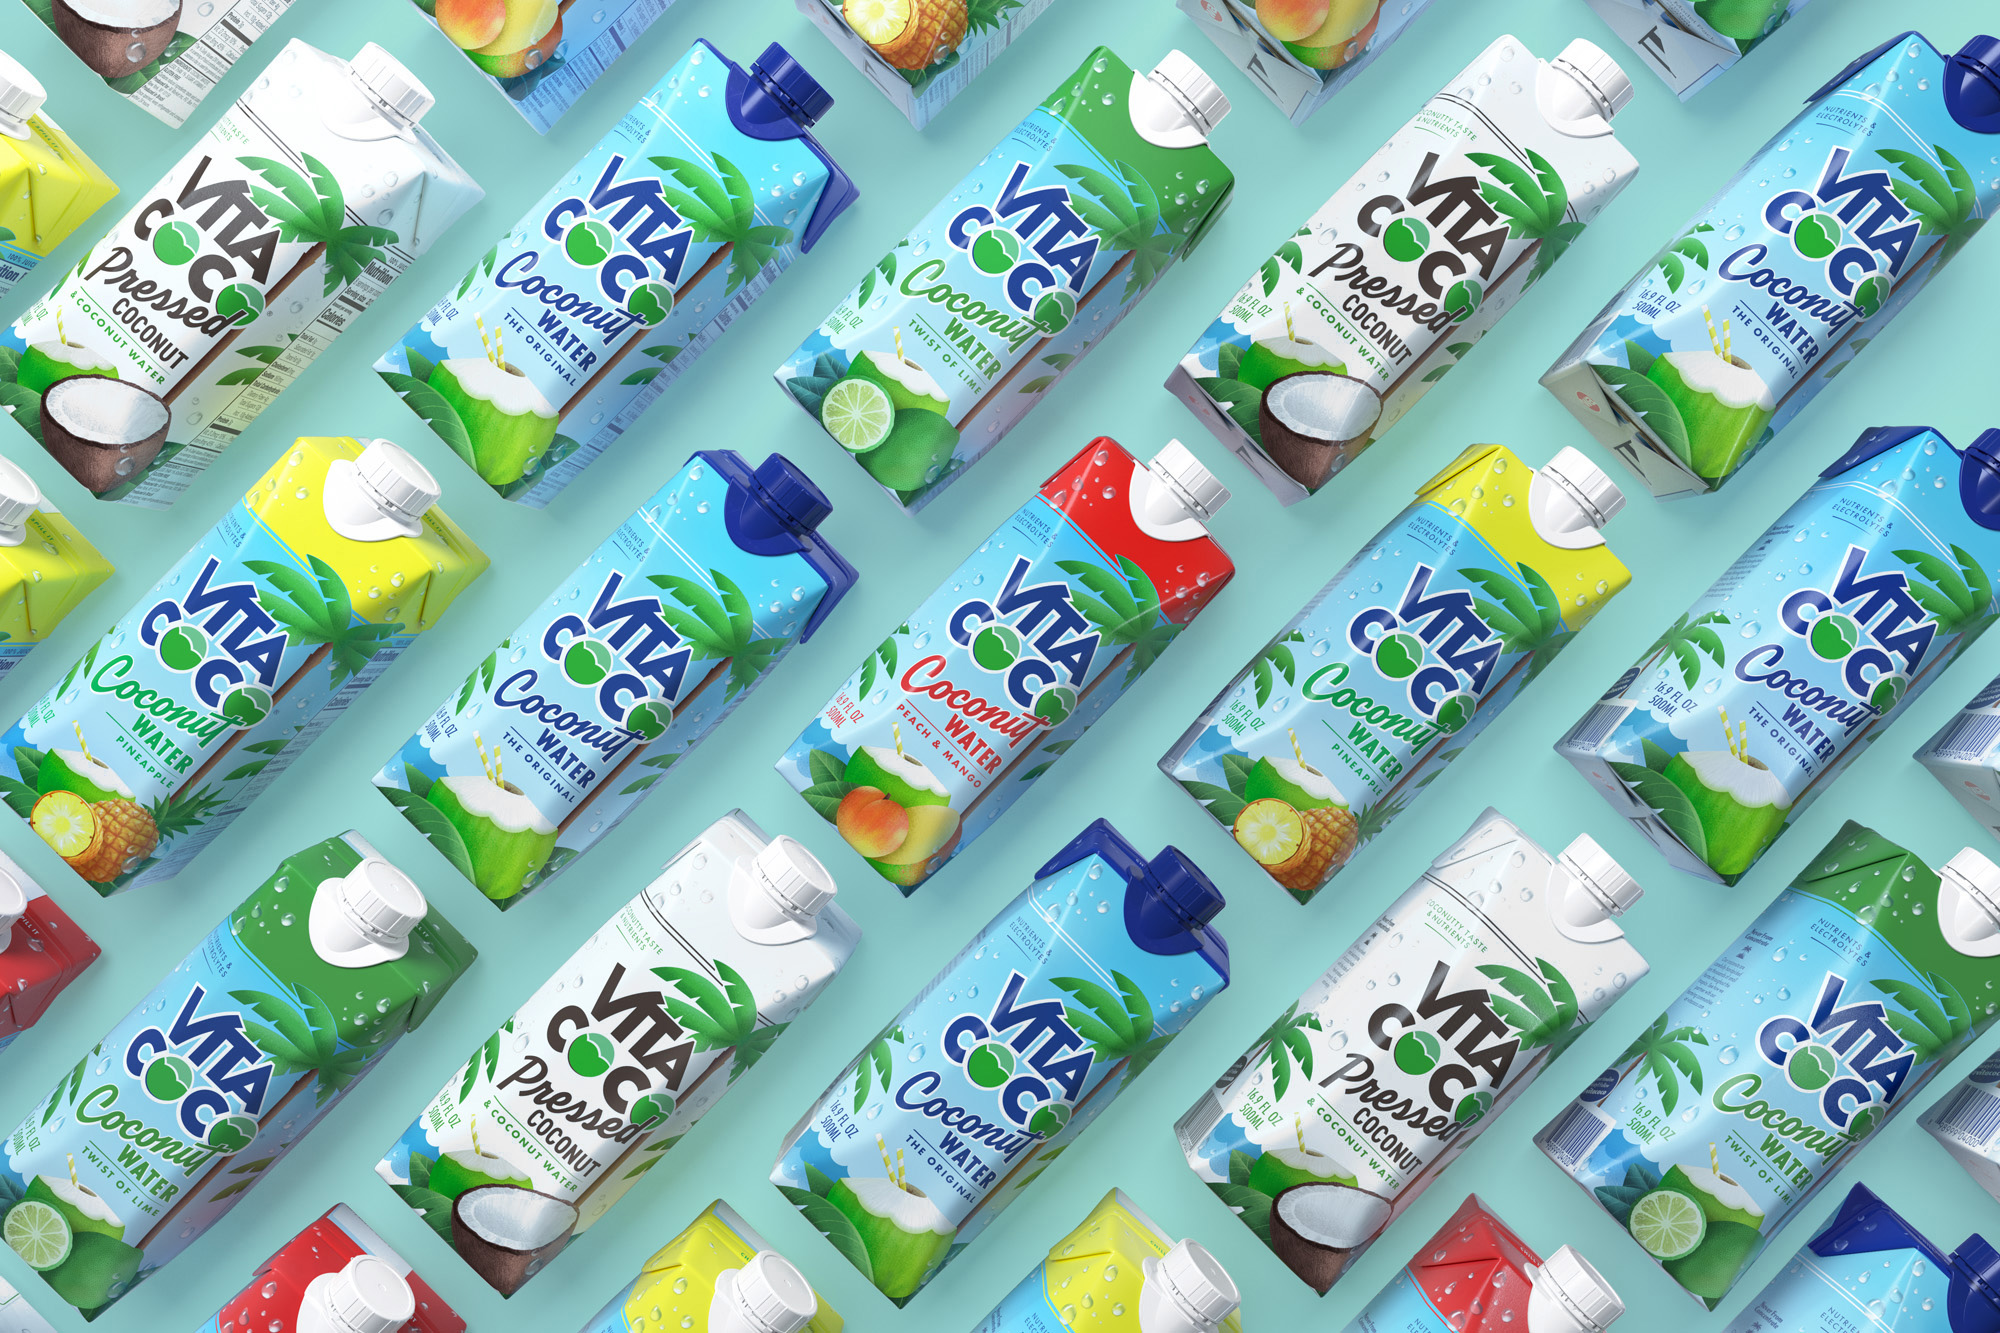 New Logo and Packaging for Vita Coco by Interesting Development